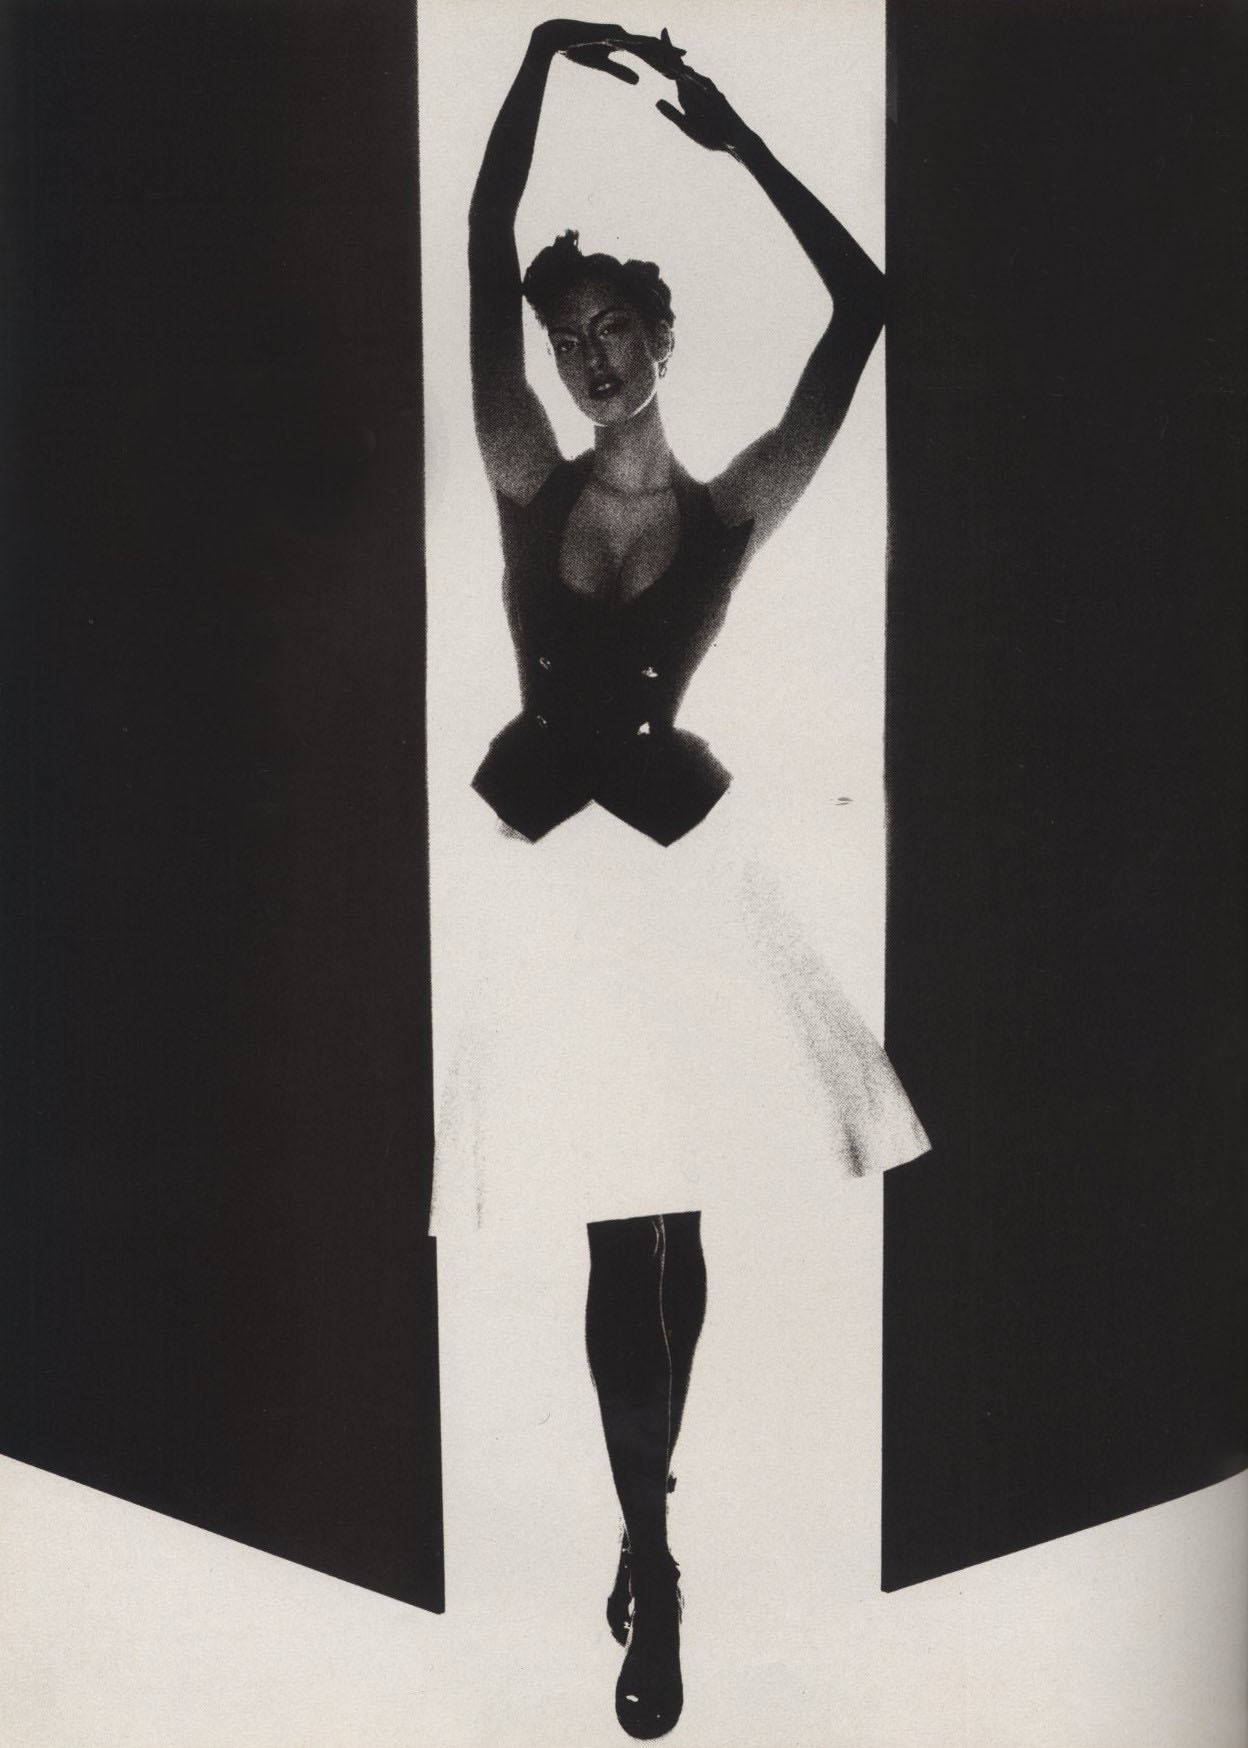 YASMEEN GHAURI VIVIENNE WESTWOOD PHOTOGRAPHY NICK KNIGHT VOGUE UK MARCH 1995